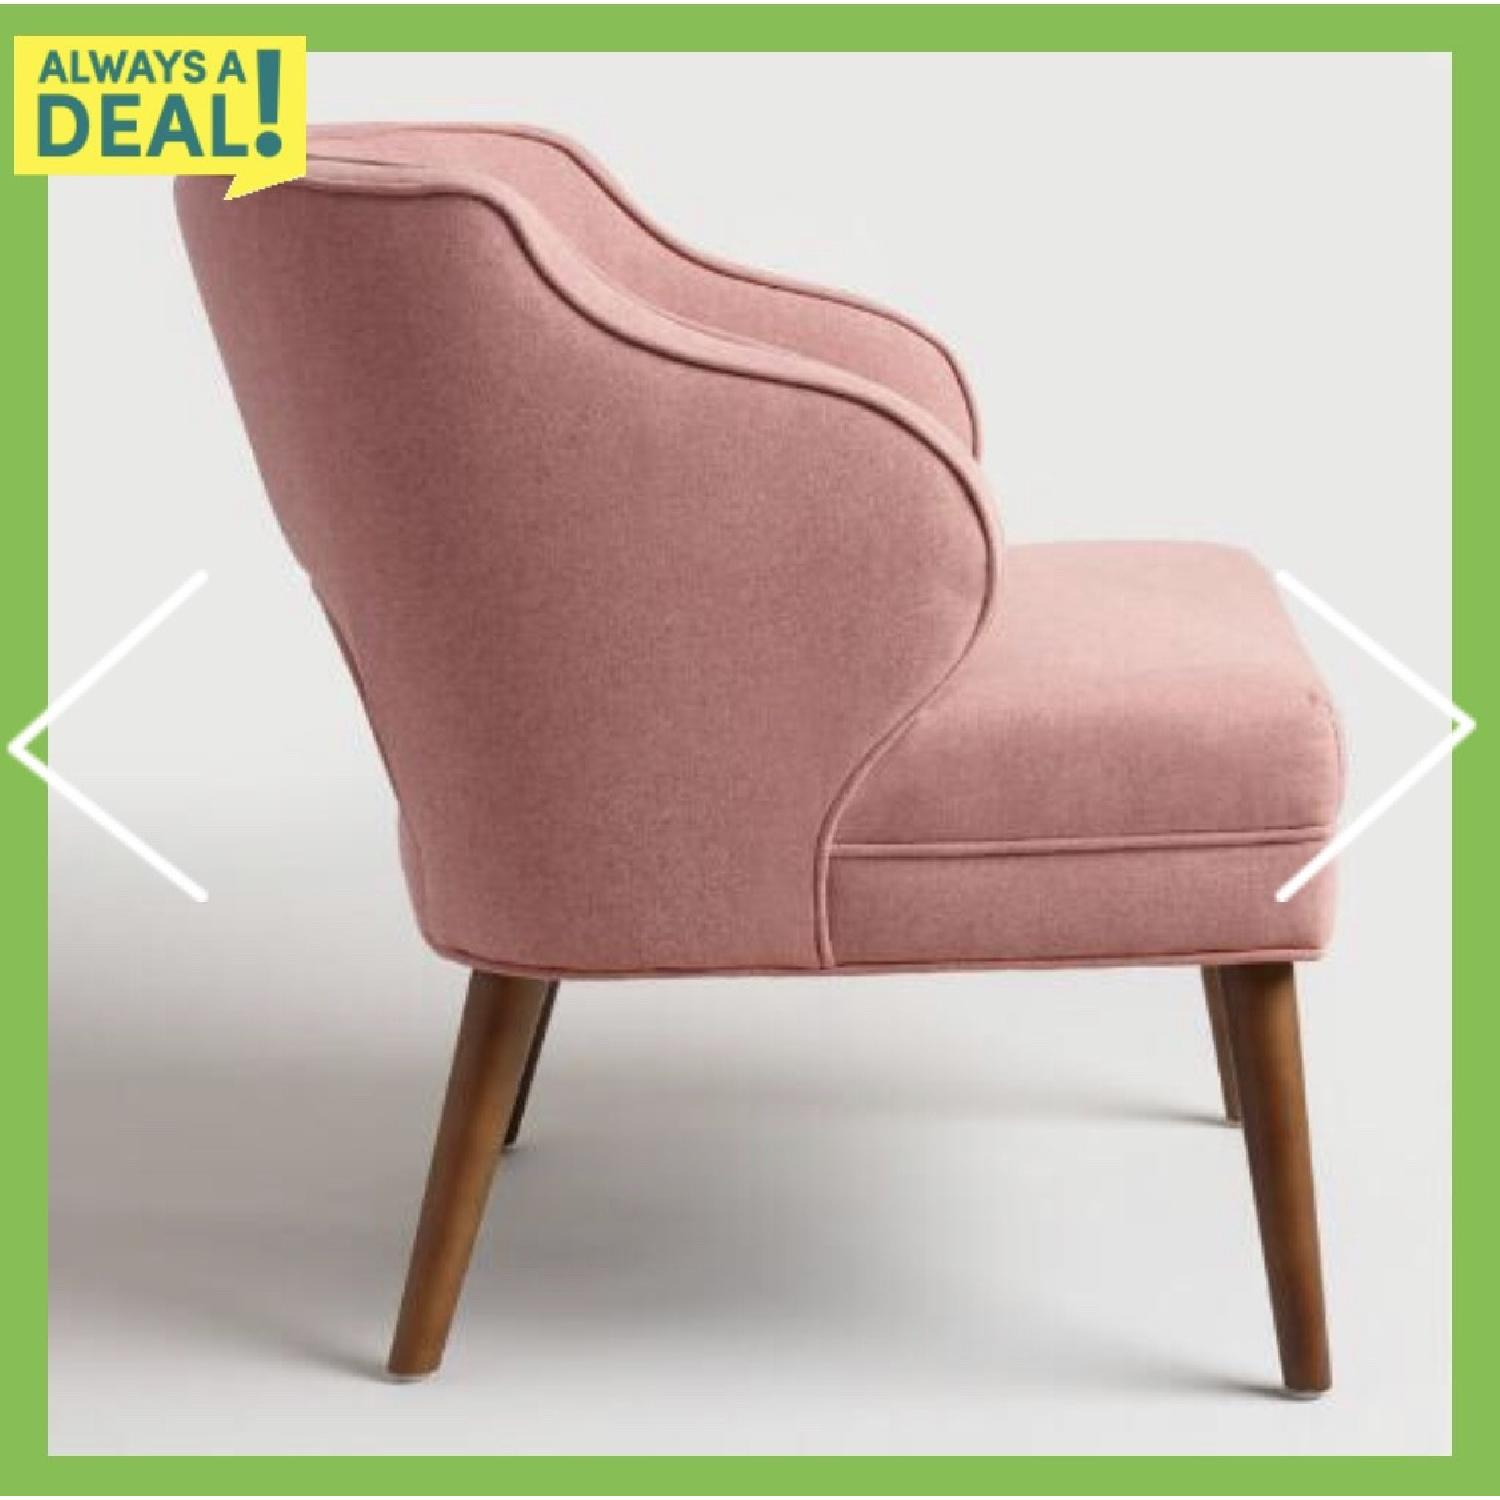 World Market Rose Pink Tyley Upholstered Chair - image-2